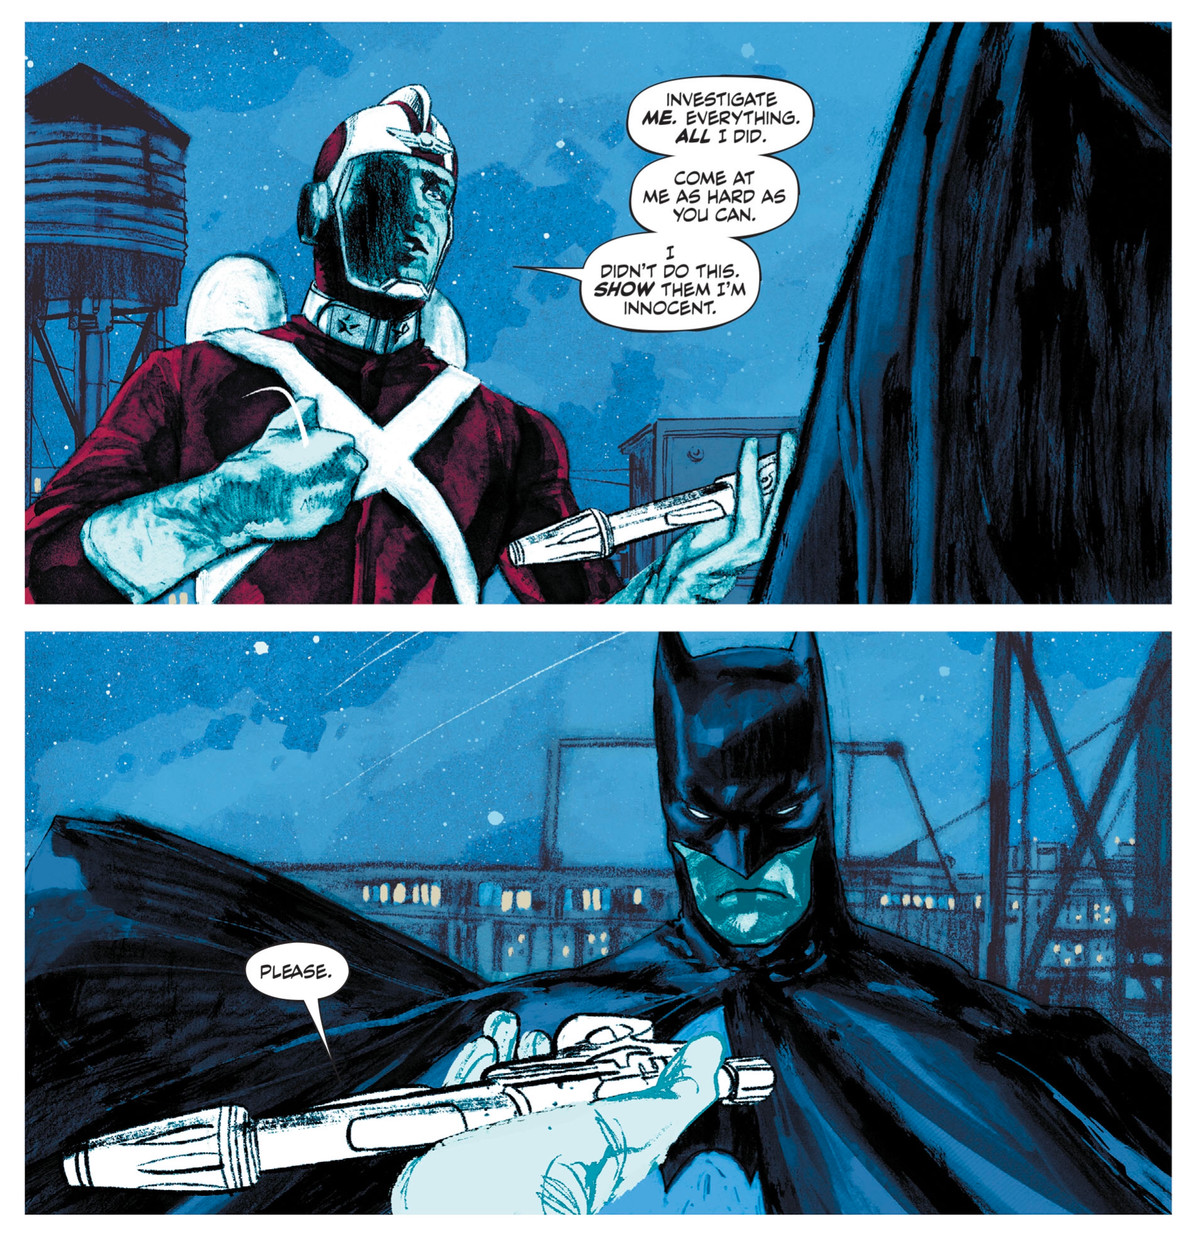 """Adam Strange tries to hand his ray gun to Batman, asking him to investigate him. """"Come at me as hard as you can. I didn't do this. Show them I'm innocent. Please."""" in Strange Adventures #1, DC Comics (2020)."""